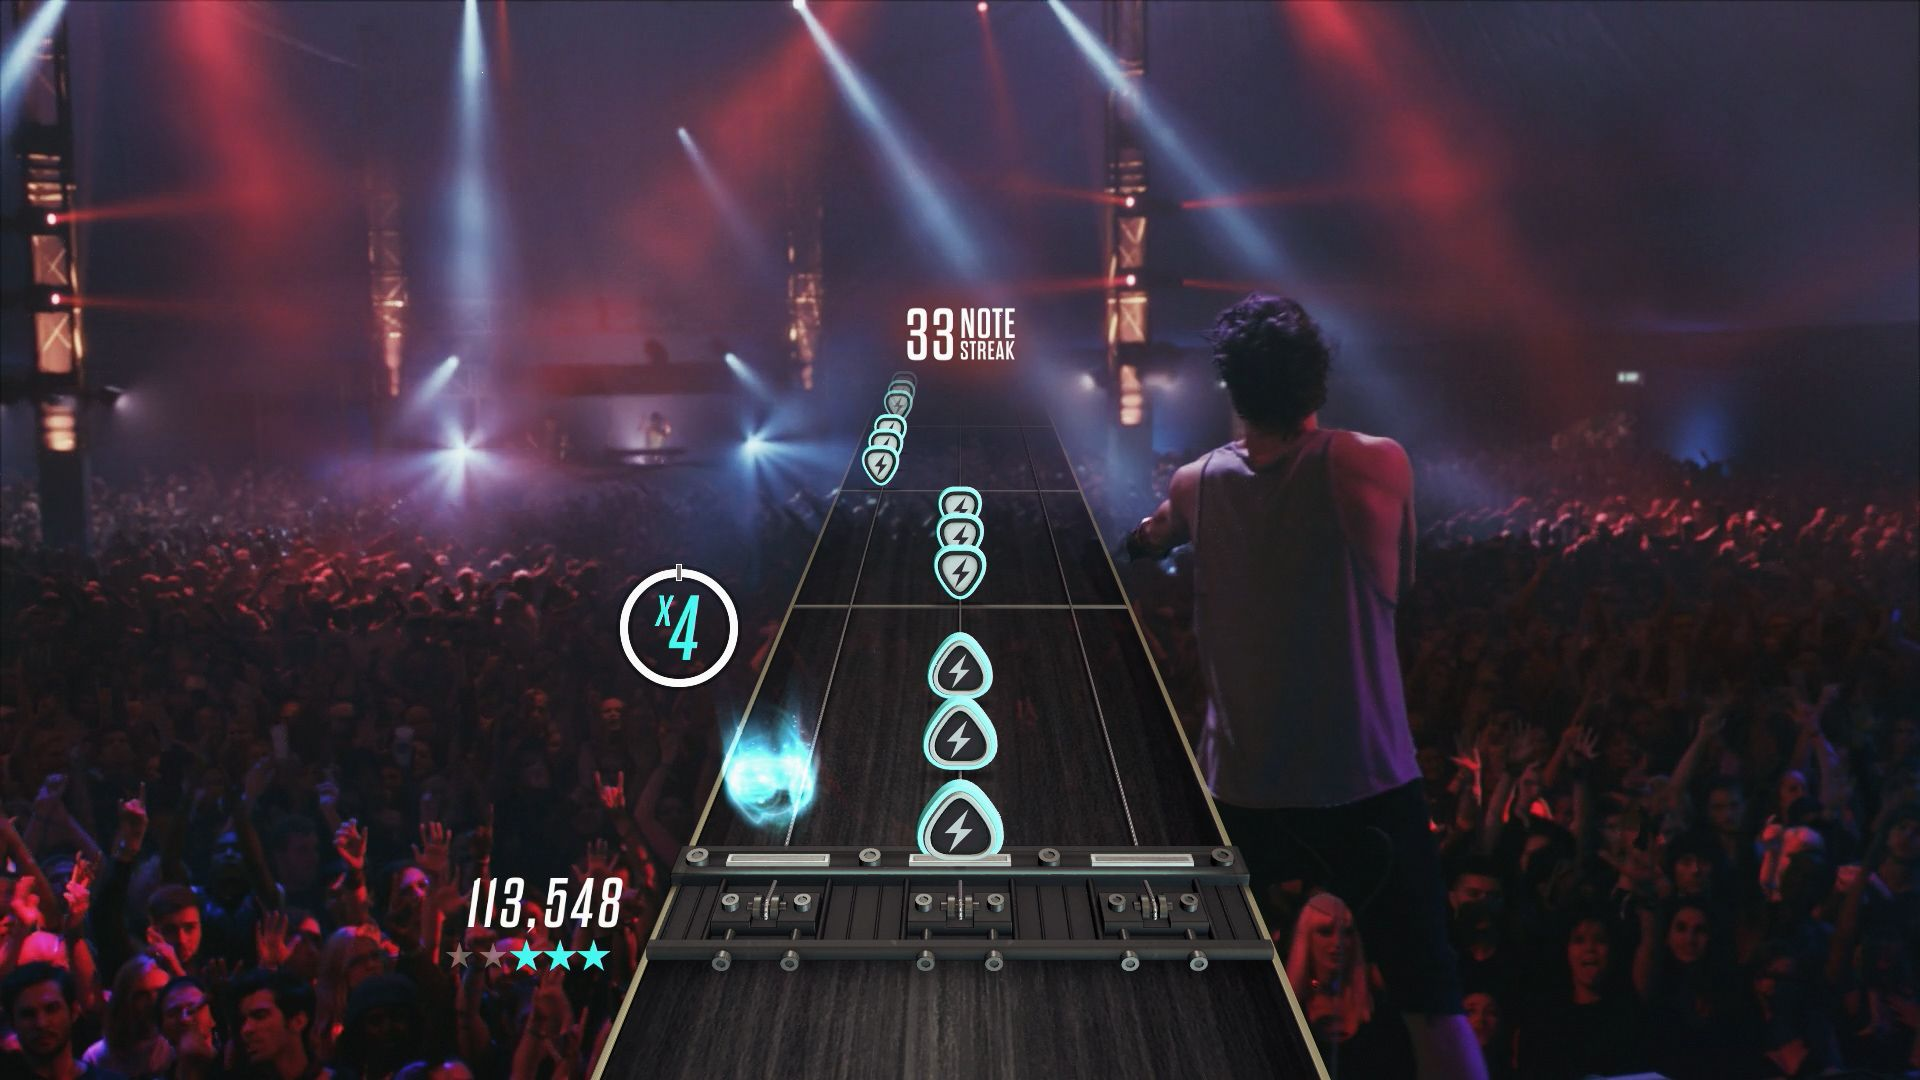 Guitar Hero Live (PS4) - the crowd goes wild